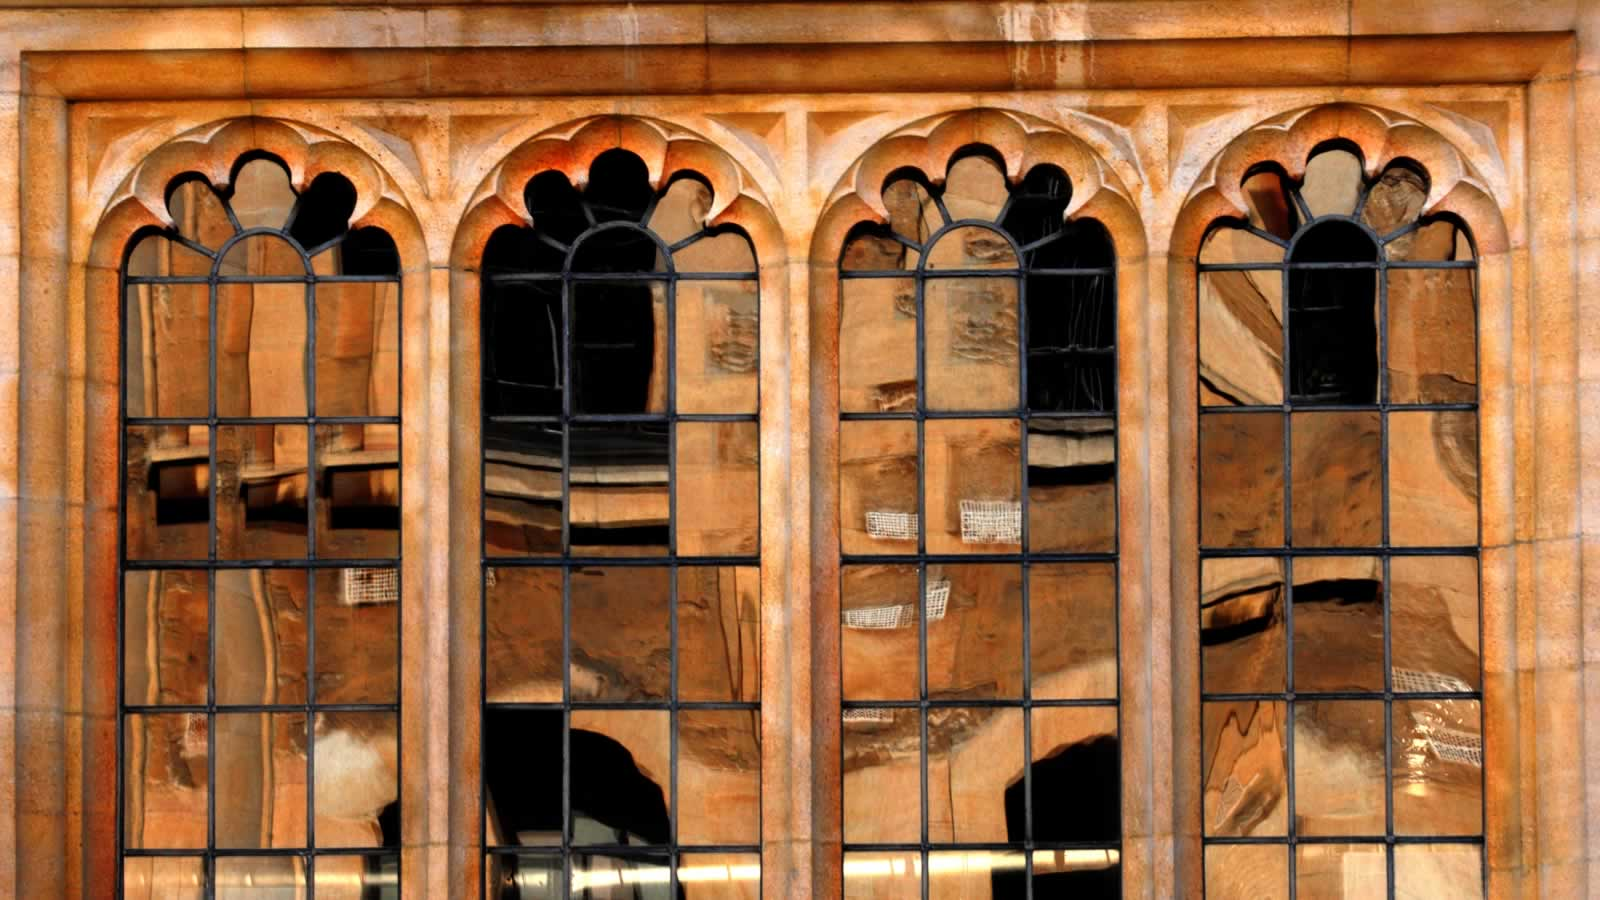 The windows of the Divinity School reflecting the Sheldonian Theatre in the sunshine